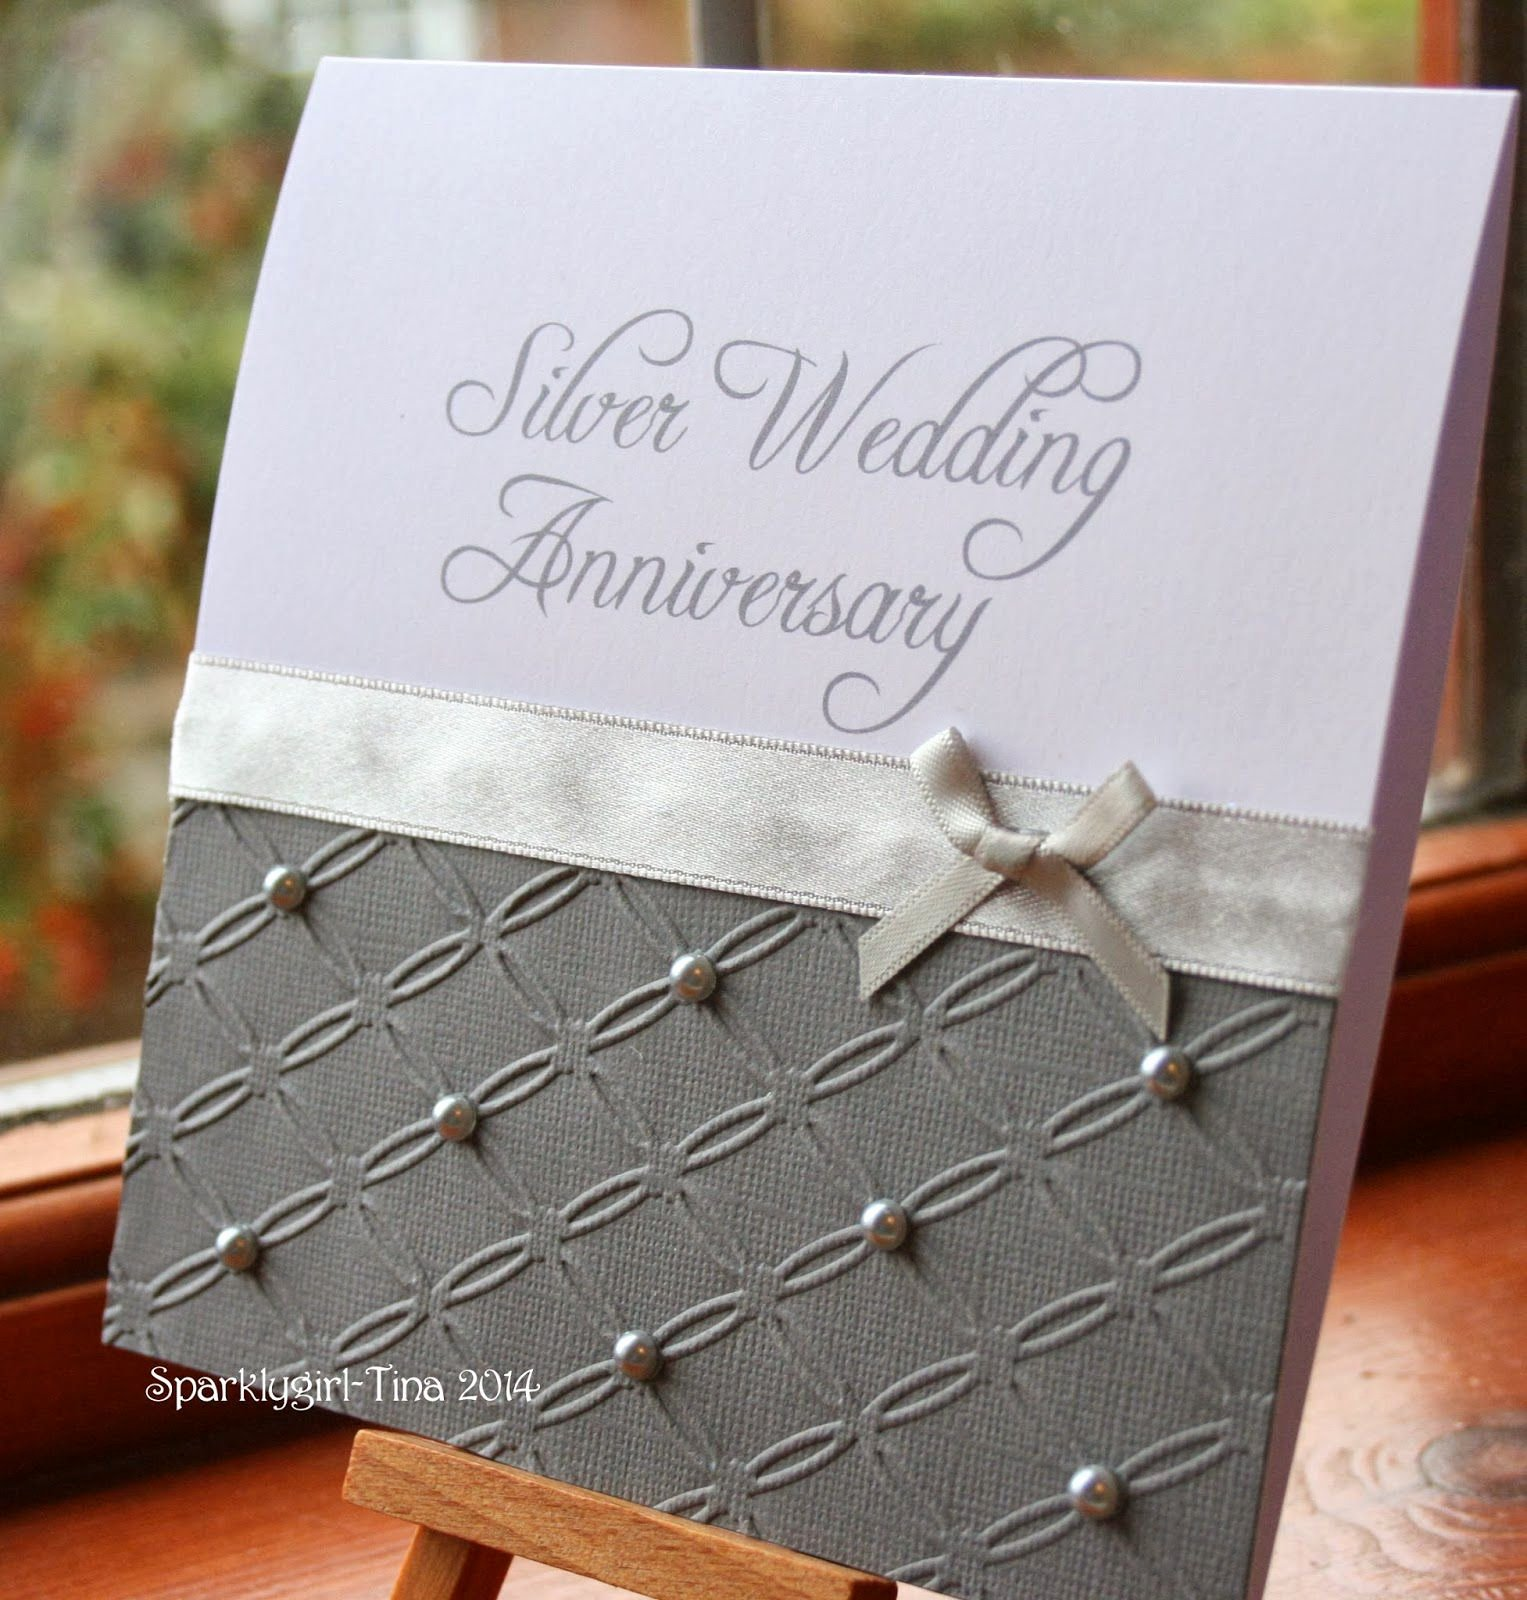 25th Wedding Anniversary Invitation Cards Best Of 25th Silver Wedding Anniversary Invitations 25th Wedding Anniversary Invitations Online